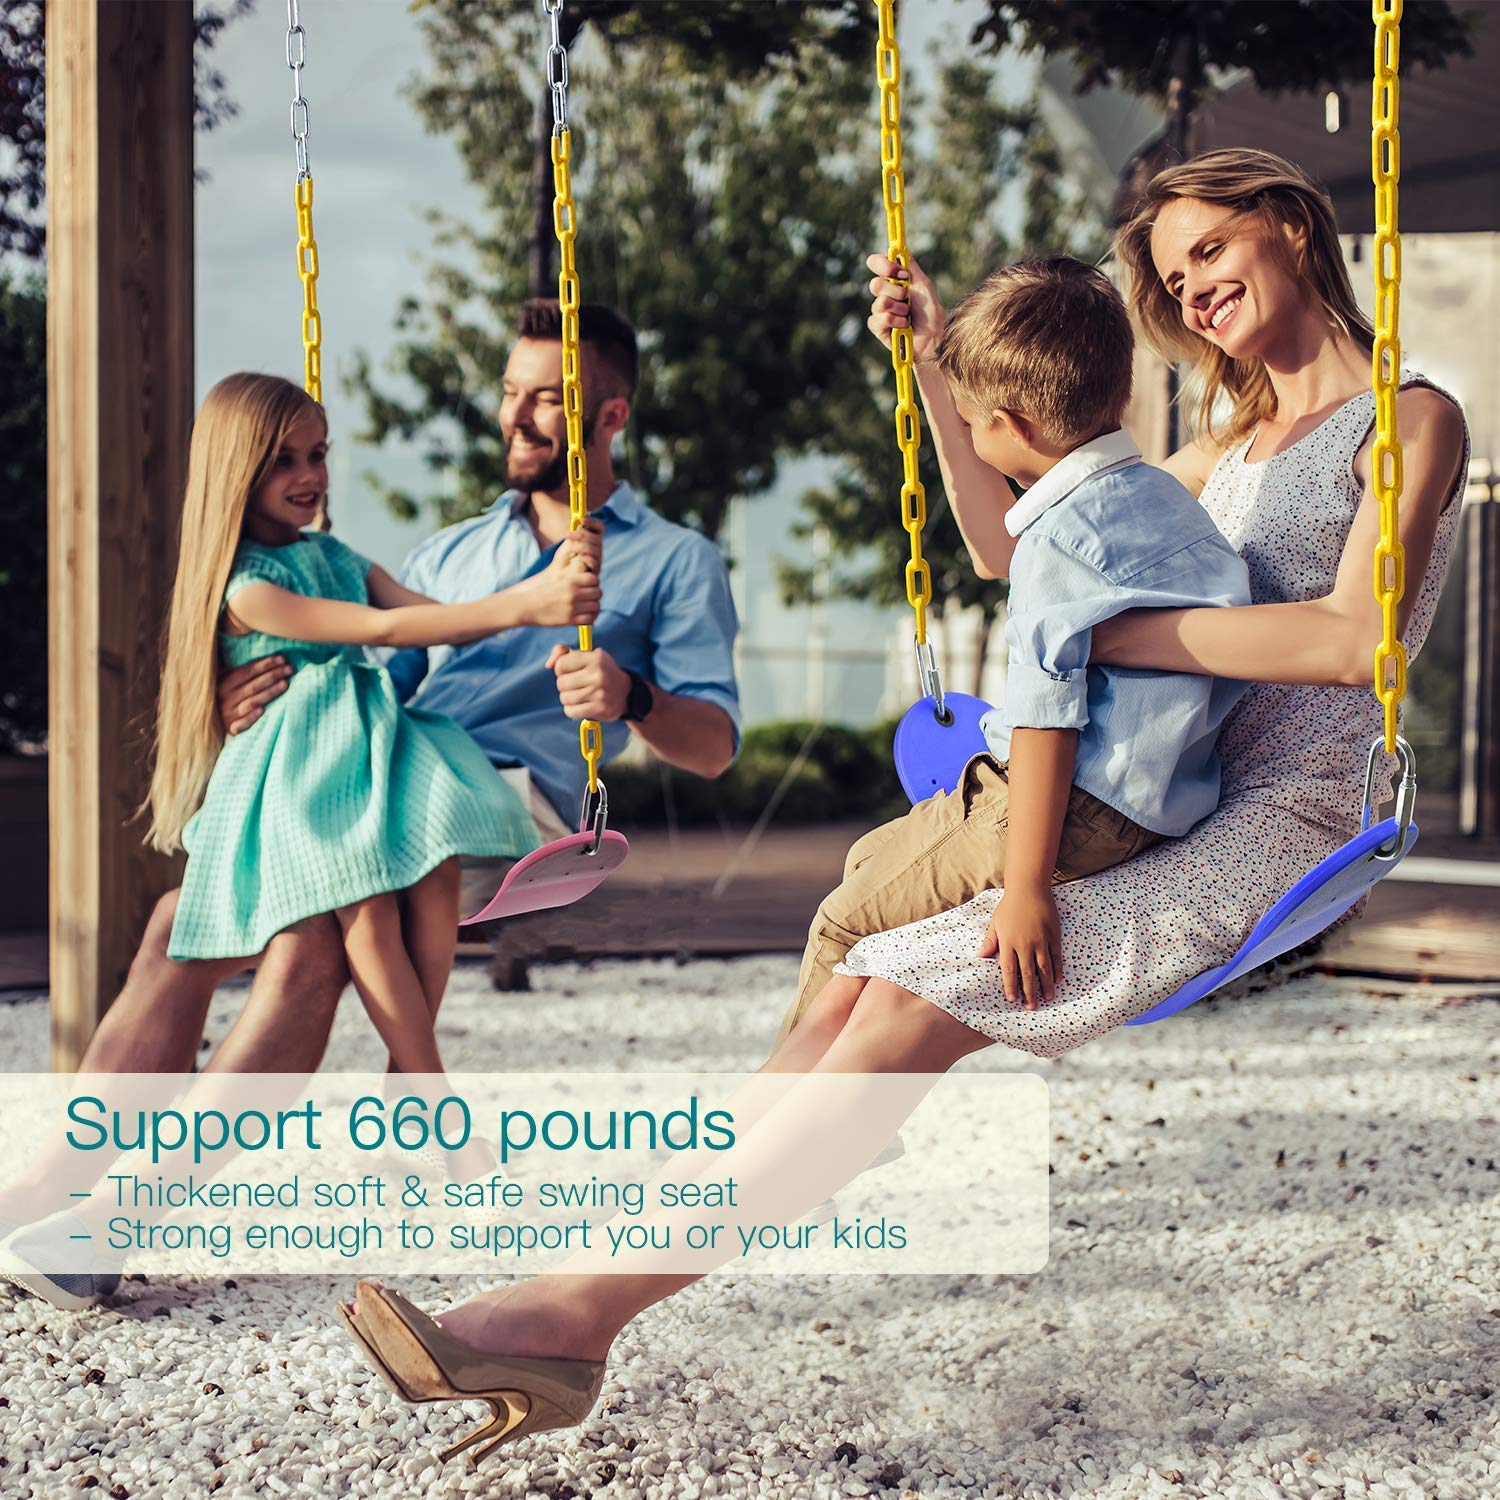 PACEARTH Swing Seat Support 660lb with 68.9 inch Anti-Rust Chains Plastic Coated 23.6 inch Tree Hanging Straps and Locking Buckles Outdoor Playground Tree Swing Pink